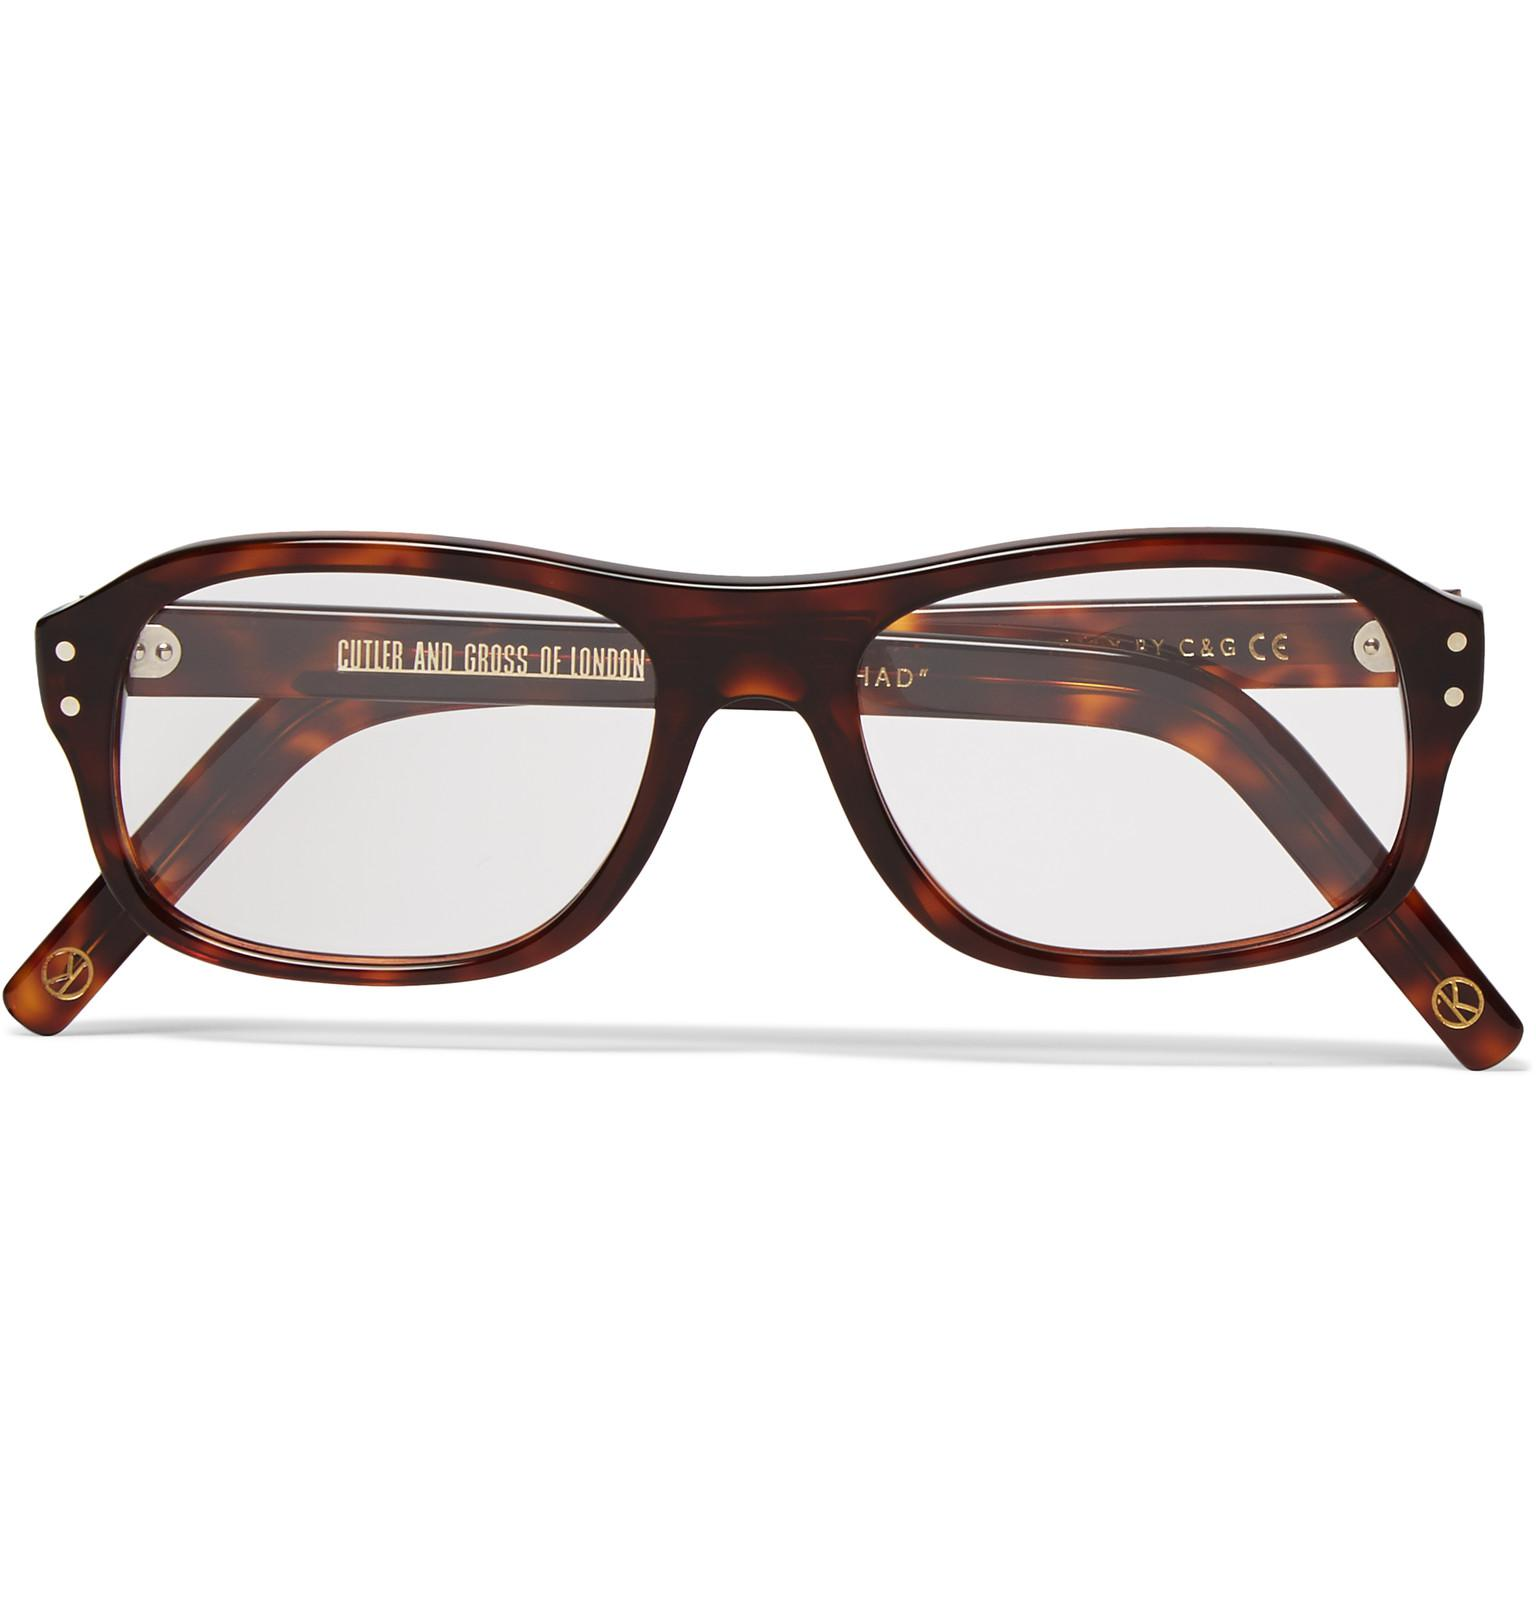 0631fb6614e Kingsman. Men s Brown + Cutler And Gross Square-frame Tortoiseshell Acetate Optical  Glasses